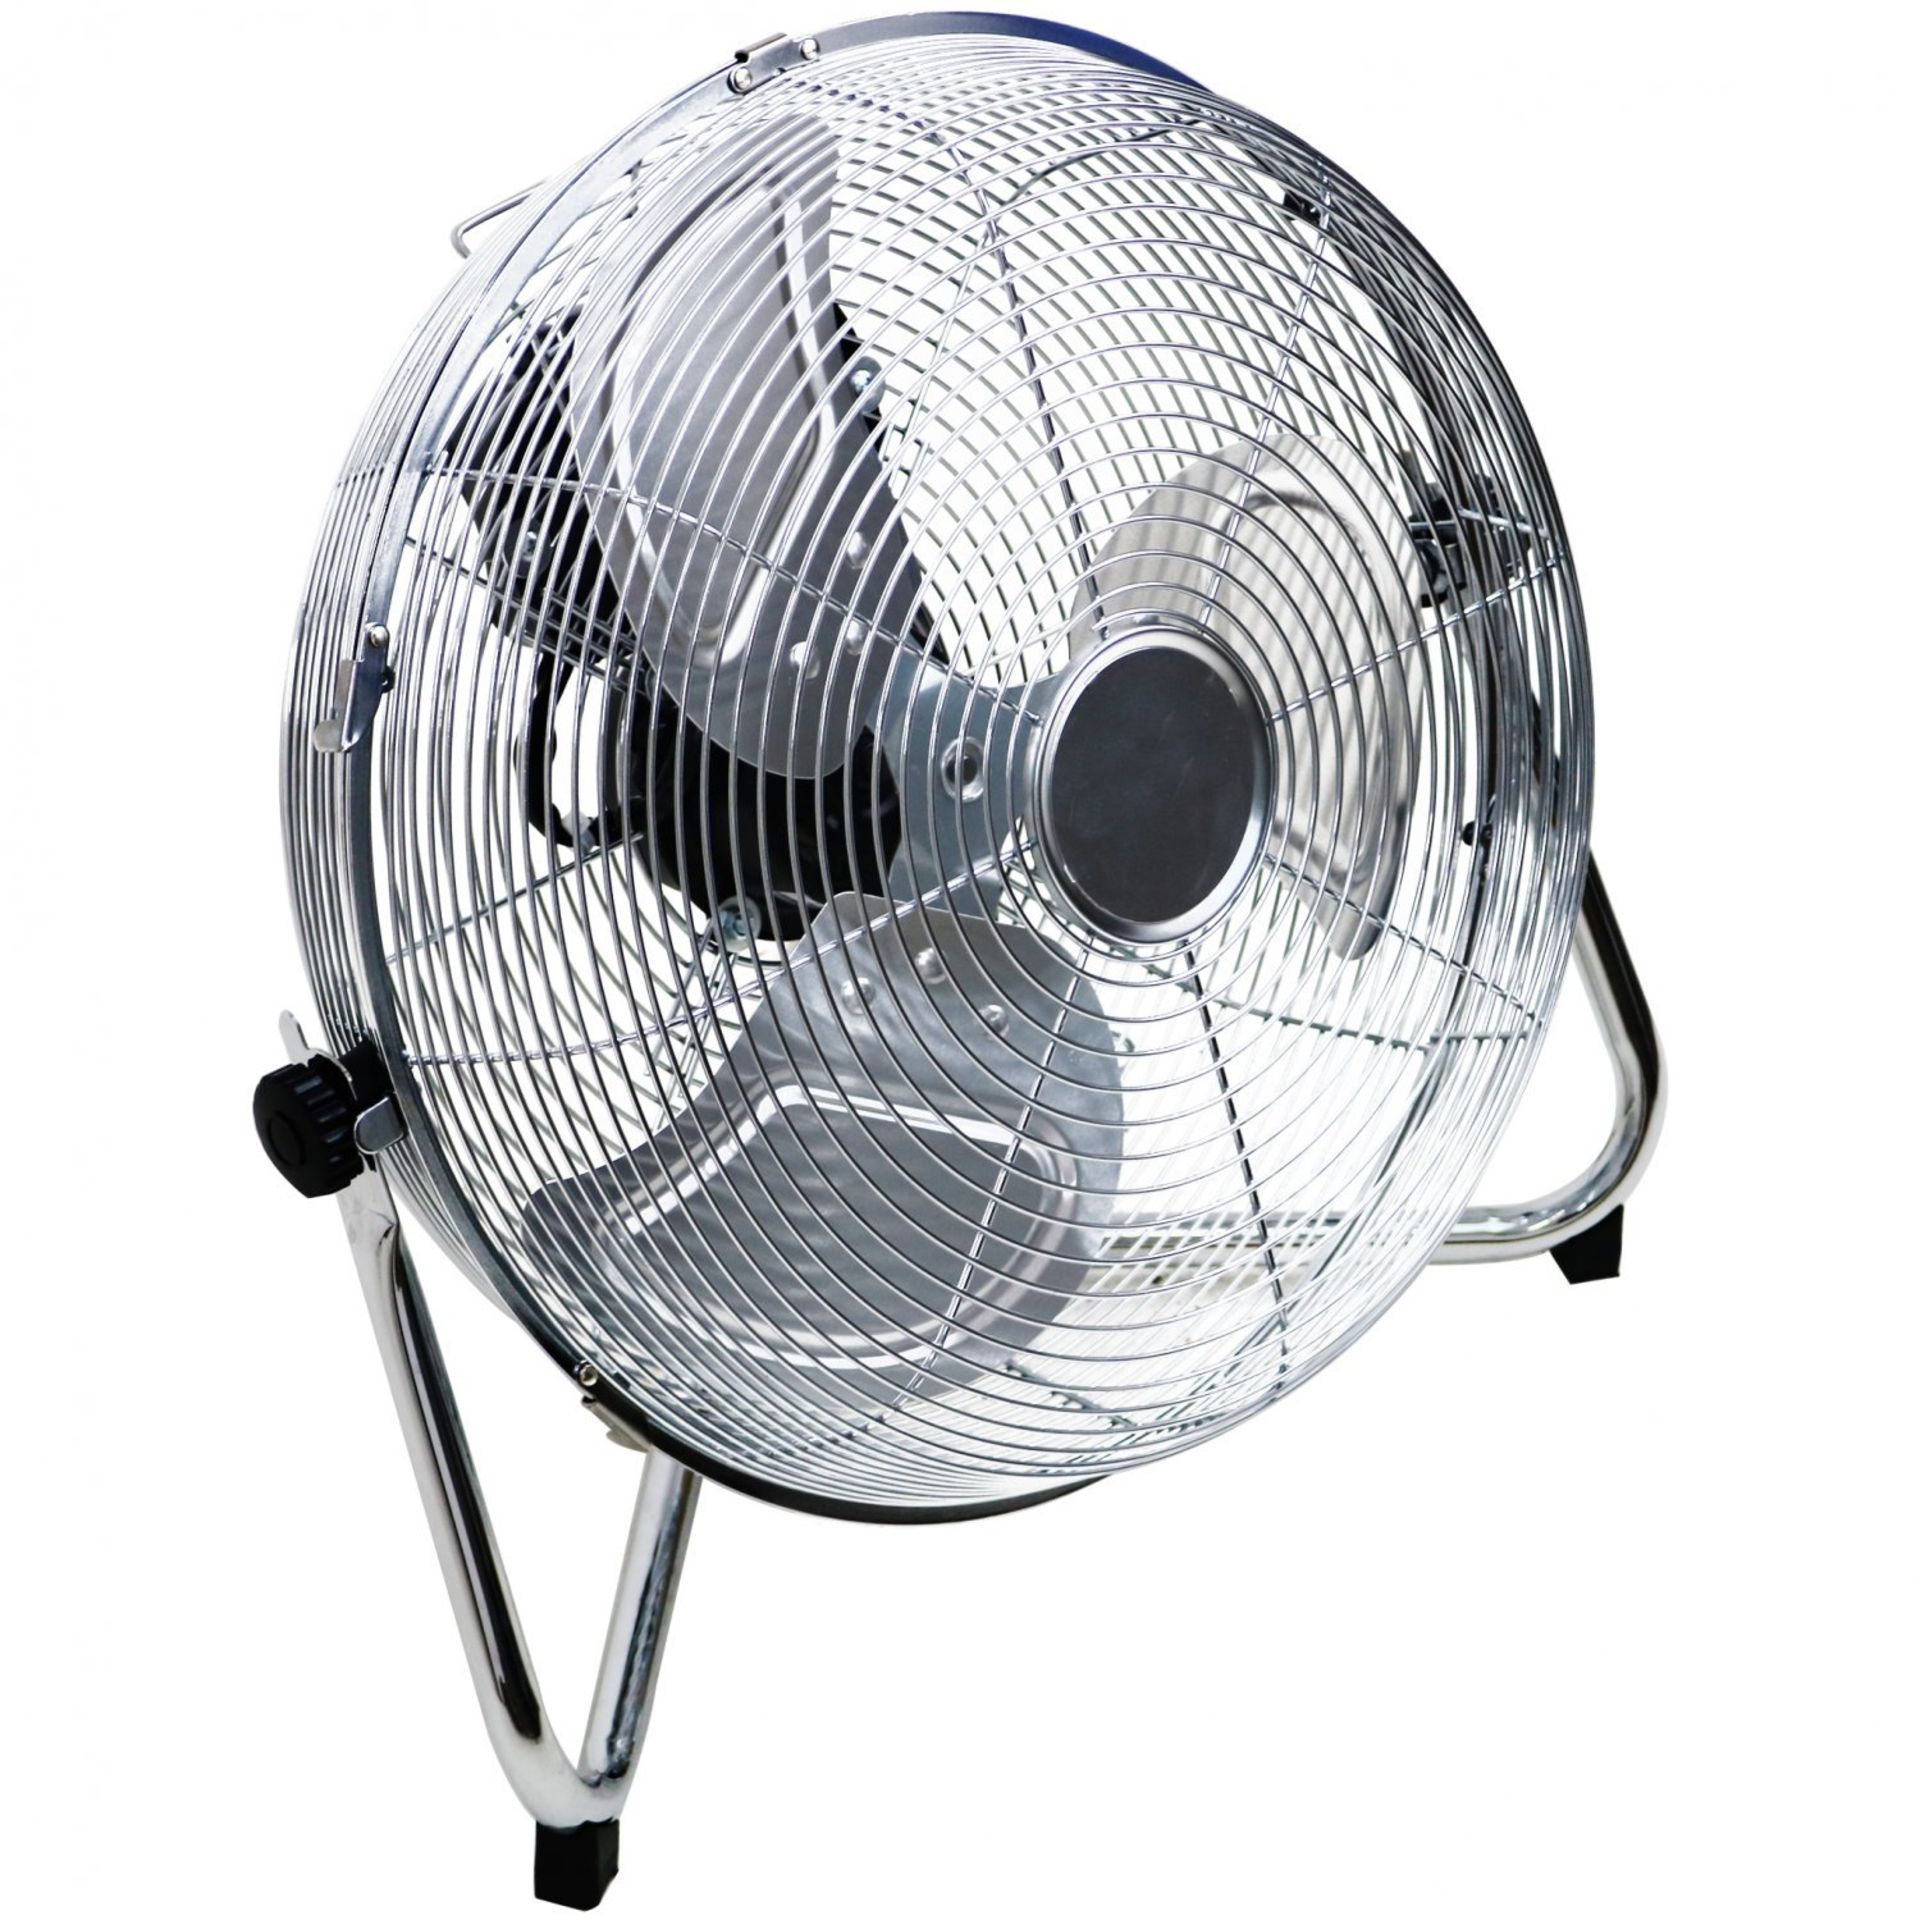 """Lot 189 - (RL122) 14"""" Inch Chrome 3 Speed Floor Standing Gym Fan Hydroponic Stay cool this year with t..."""